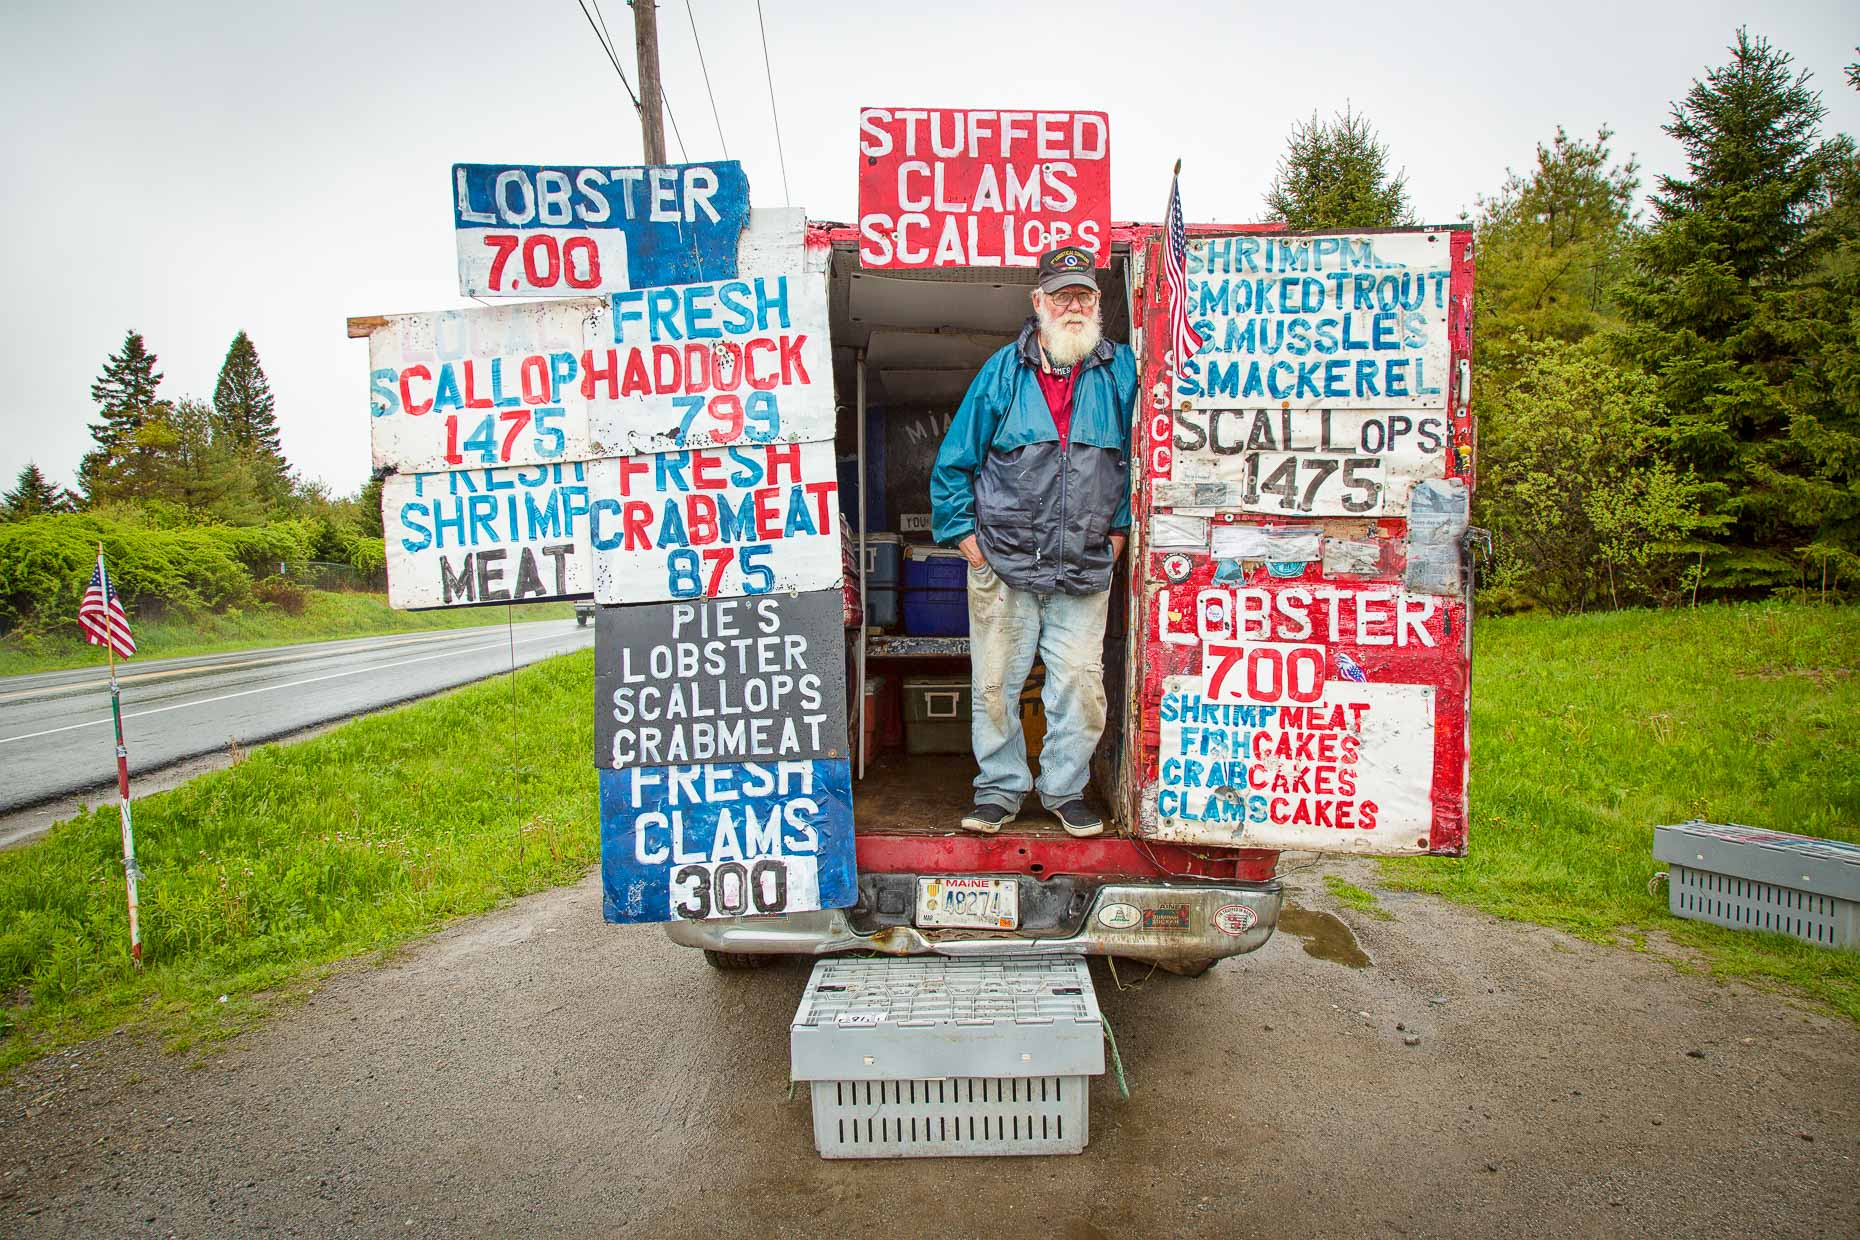 Environmental portrait of man selling fish out of truck parked along road with colorful signage in Maine by David Zaitz